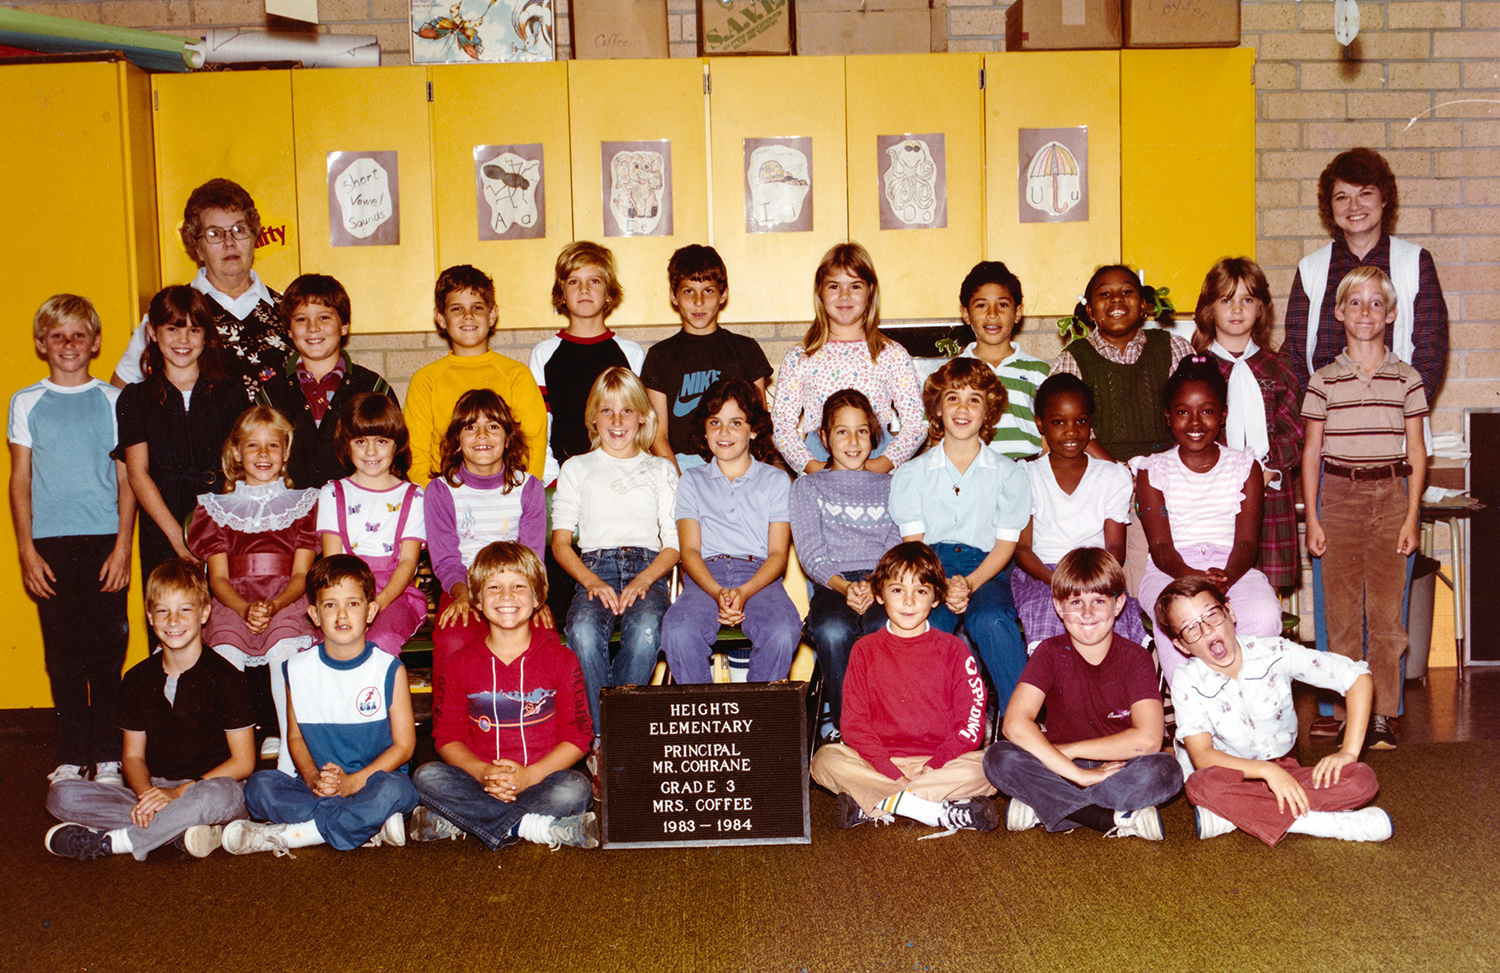 Susann Keohane, in the back, second from right standing directly next to her third grade teacher Mrs. Coffee, back right, and her third grade class in an old school photo.